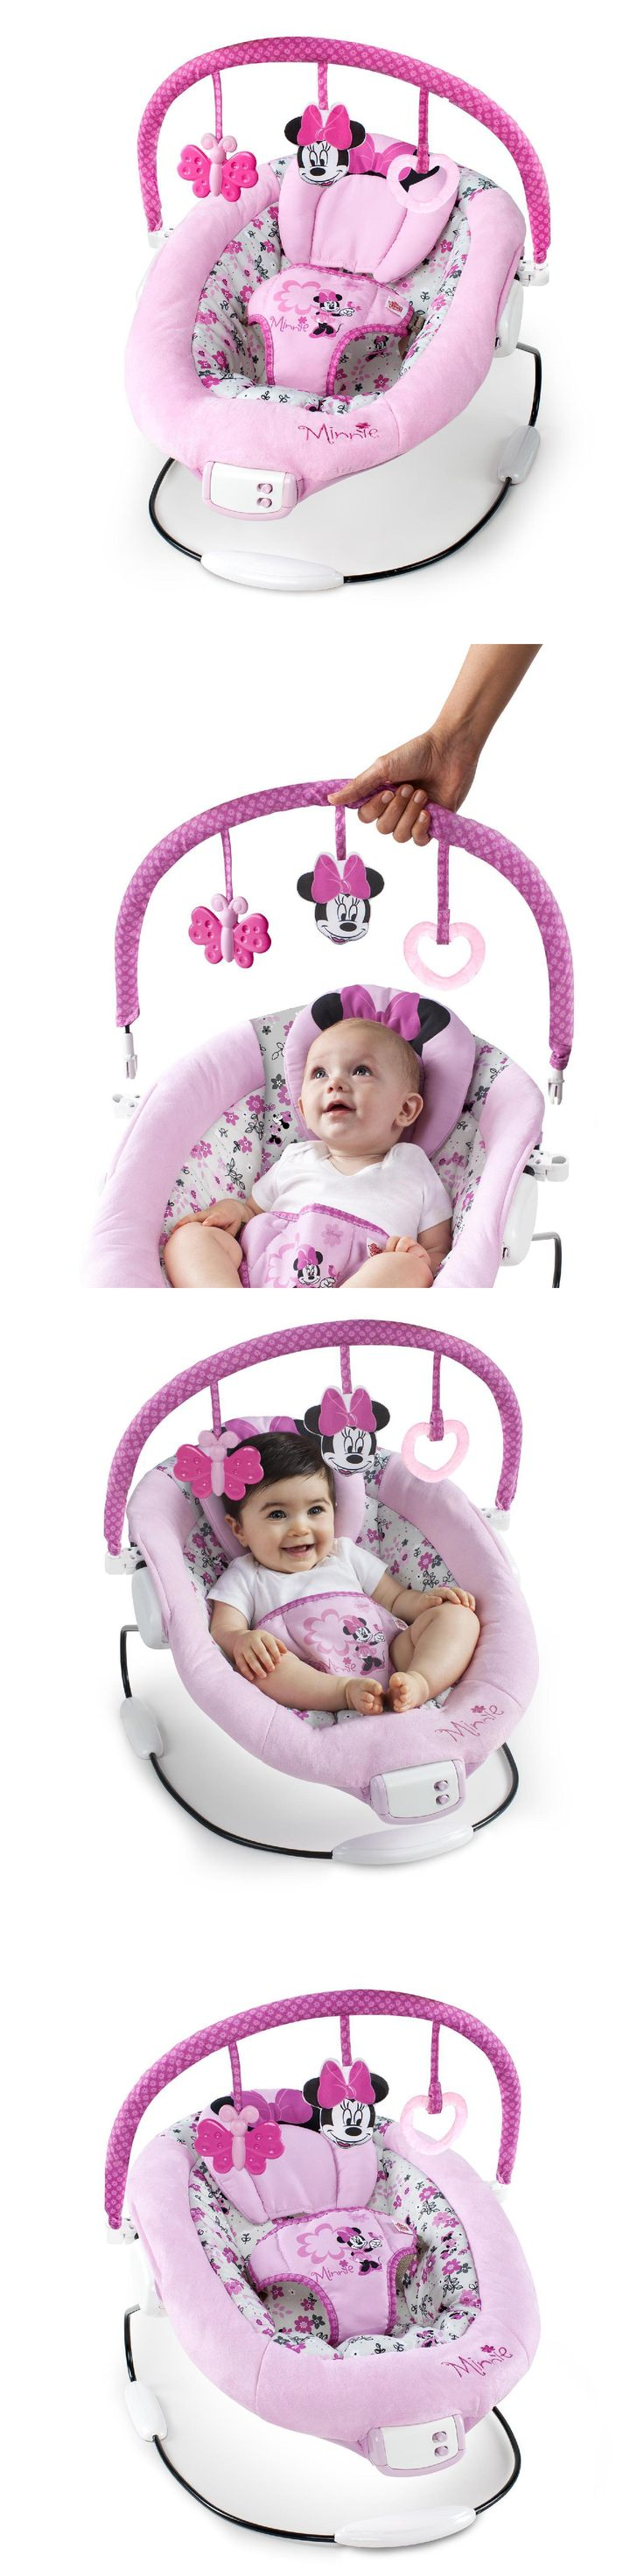 Baby Swings 2990: Baby Bouncer Swing Chair Infant Portable Toddler Rocker -> BUY IT NOW ONLY: $38.98 on eBay!